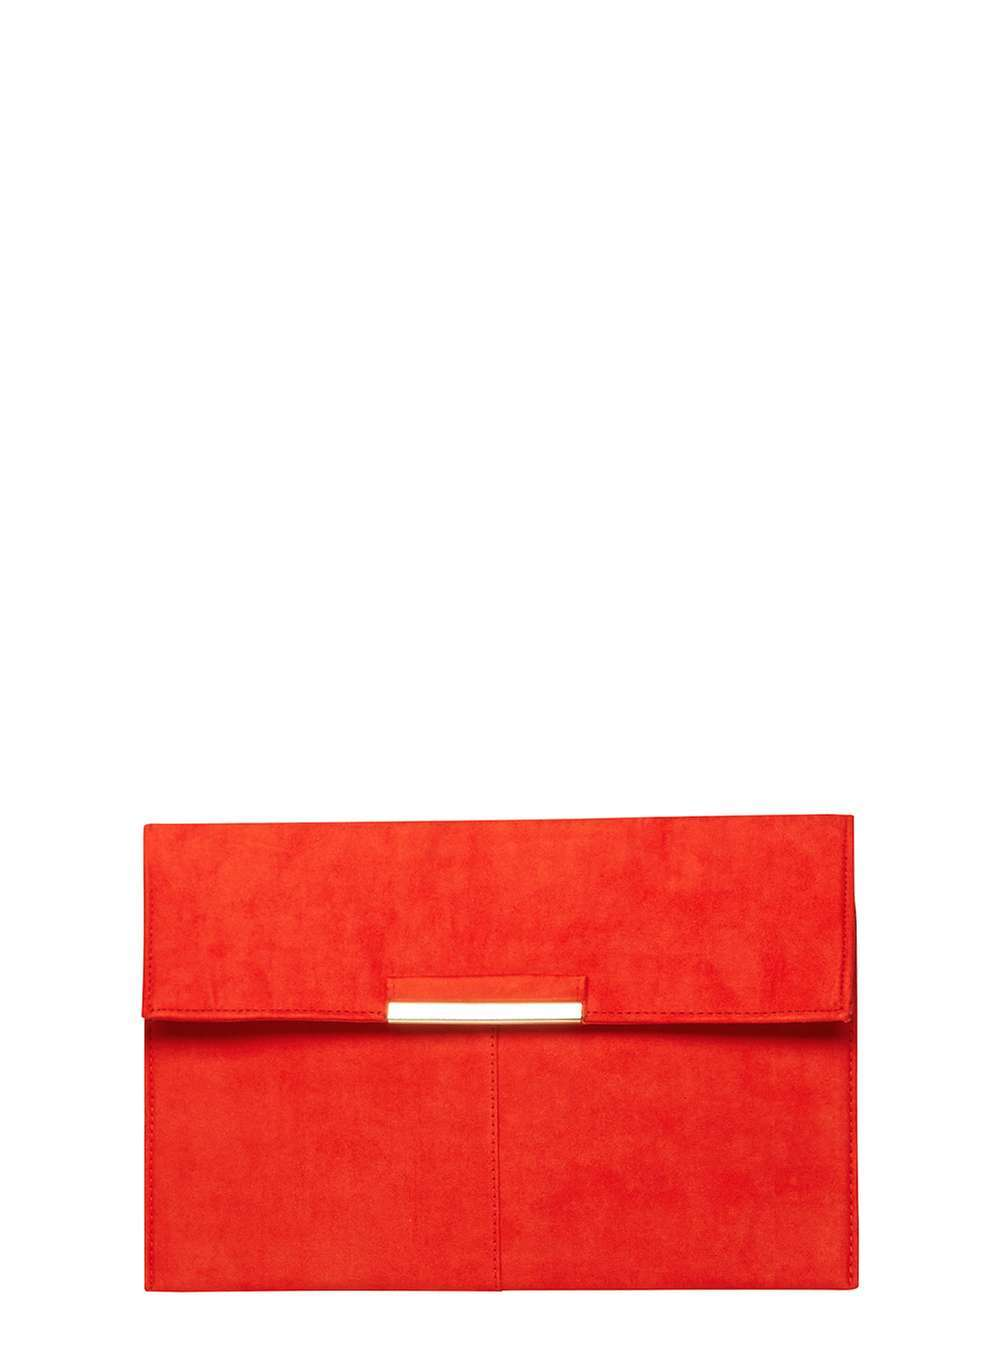 Womens Red Faux Suede Tab Clutch Bag Red - predominant colour: bright orange; occasions: evening, occasion; type of pattern: standard; style: clutch; length: hand carry; size: standard; pattern: plain; finish: plain; material: faux suede; season: a/w 2016; wardrobe: event